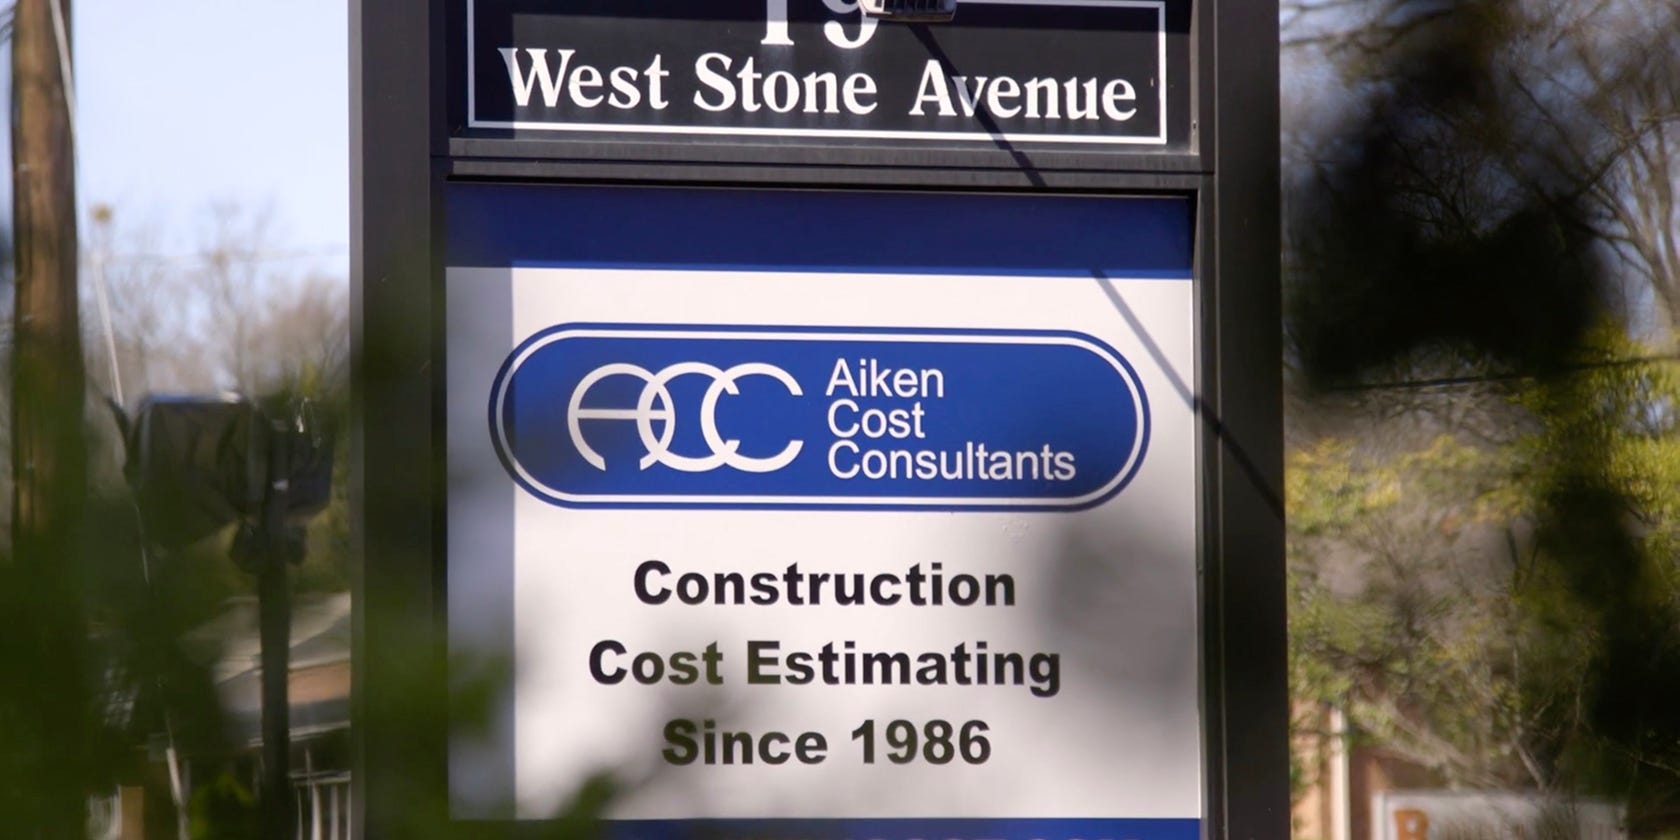 Aiken Cost Consultants Customer Story